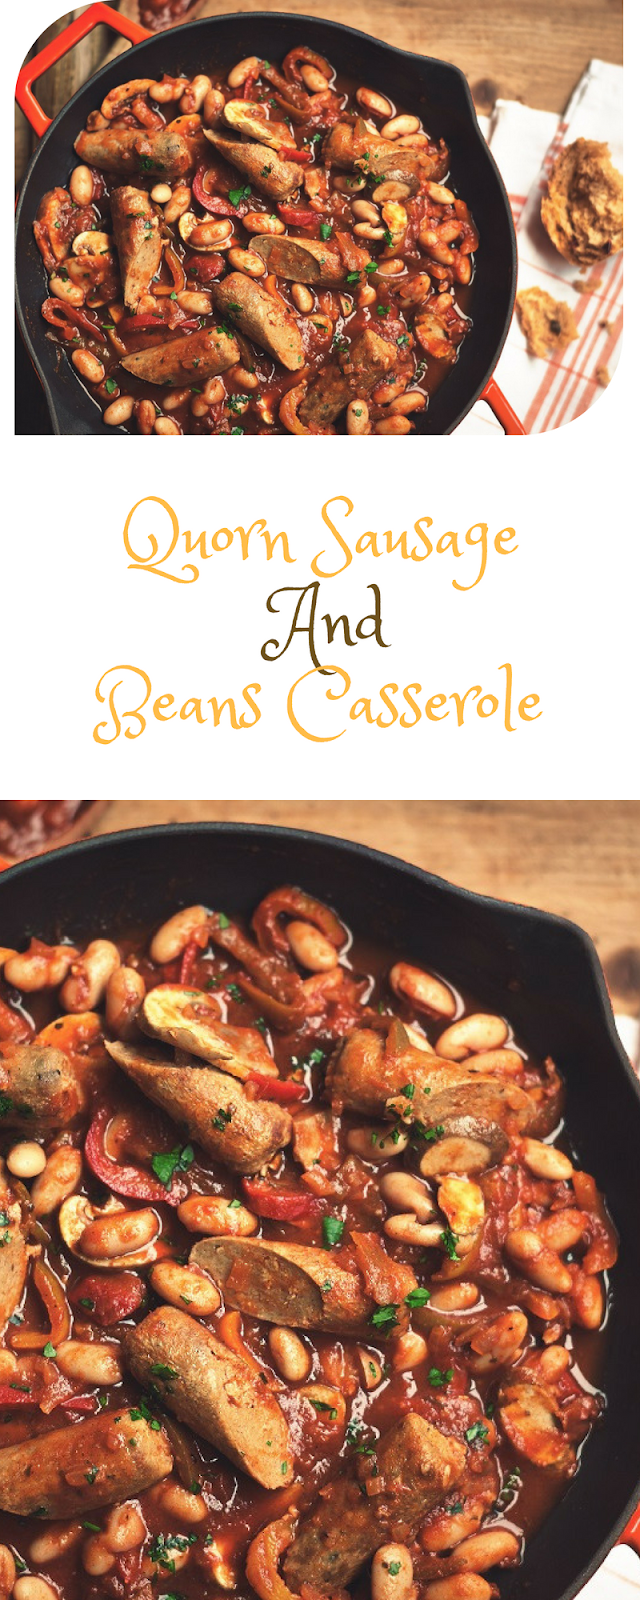 Quorn Sausage And Beans Casserole Meat Free Lifestyle